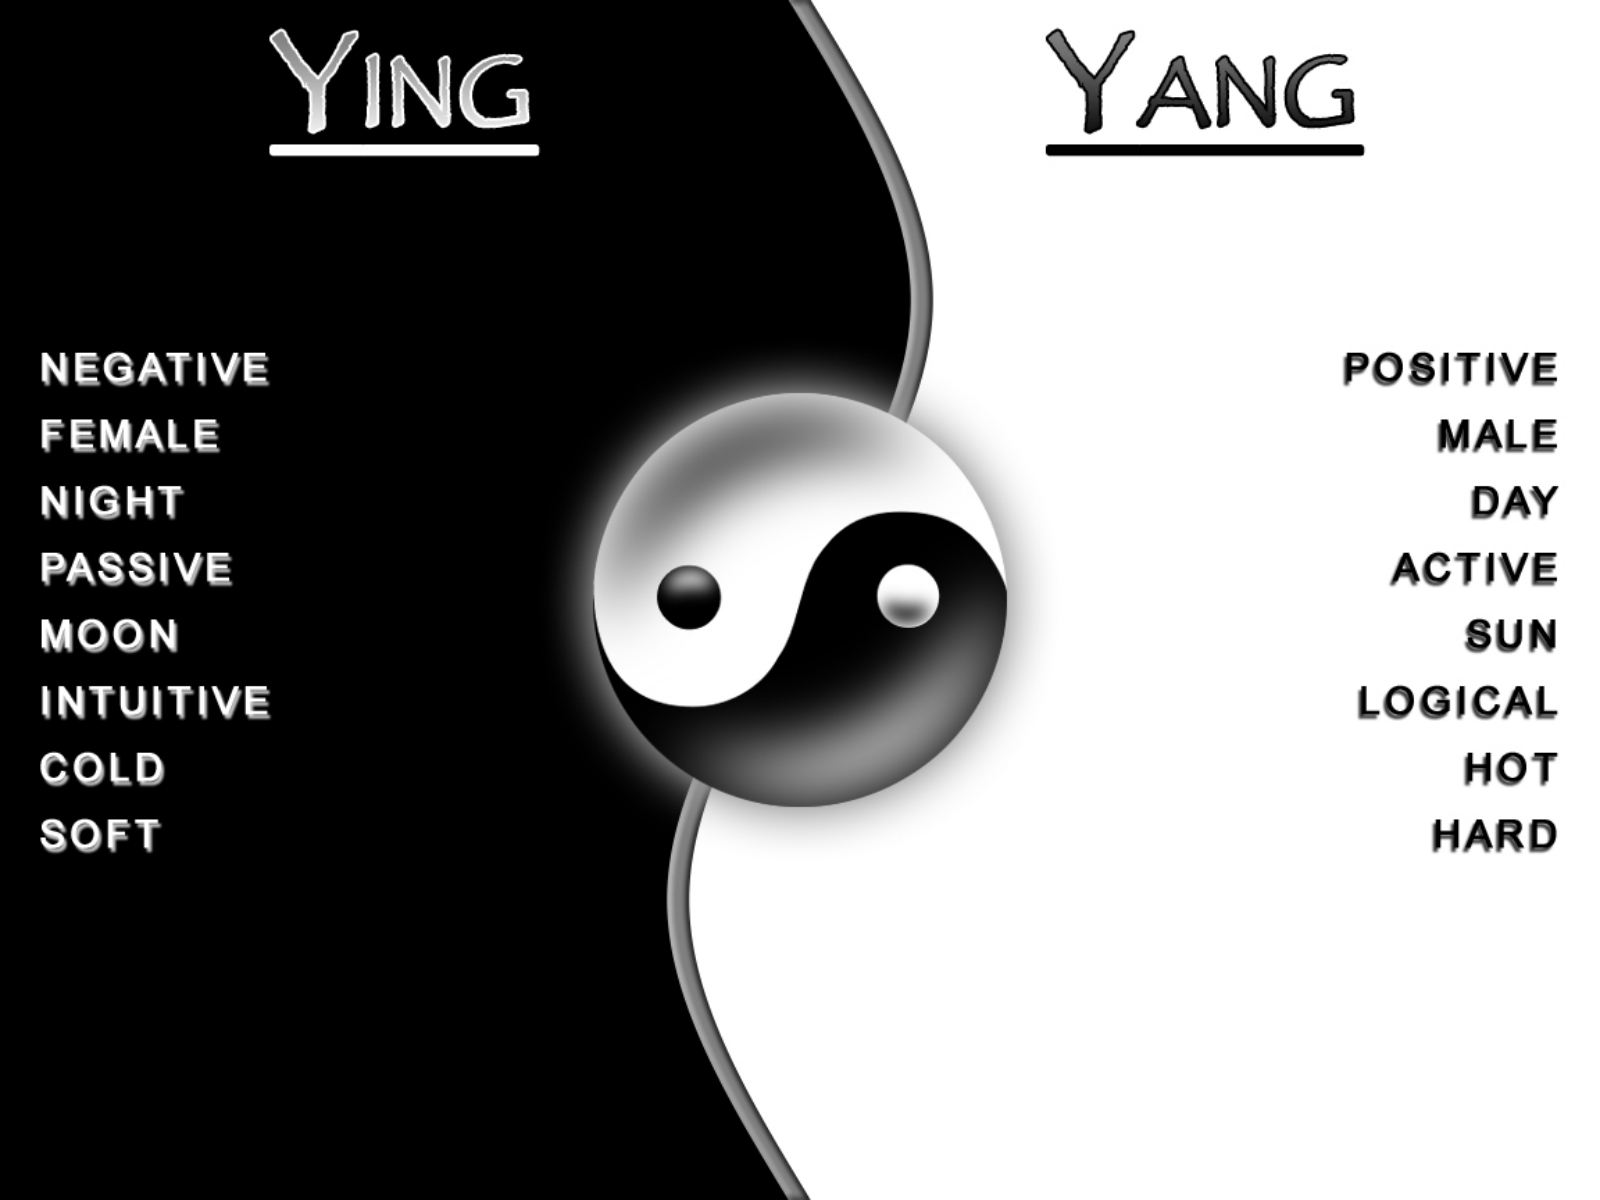 Central Wallpaper Far East Philosophy Ying Yang Meaning